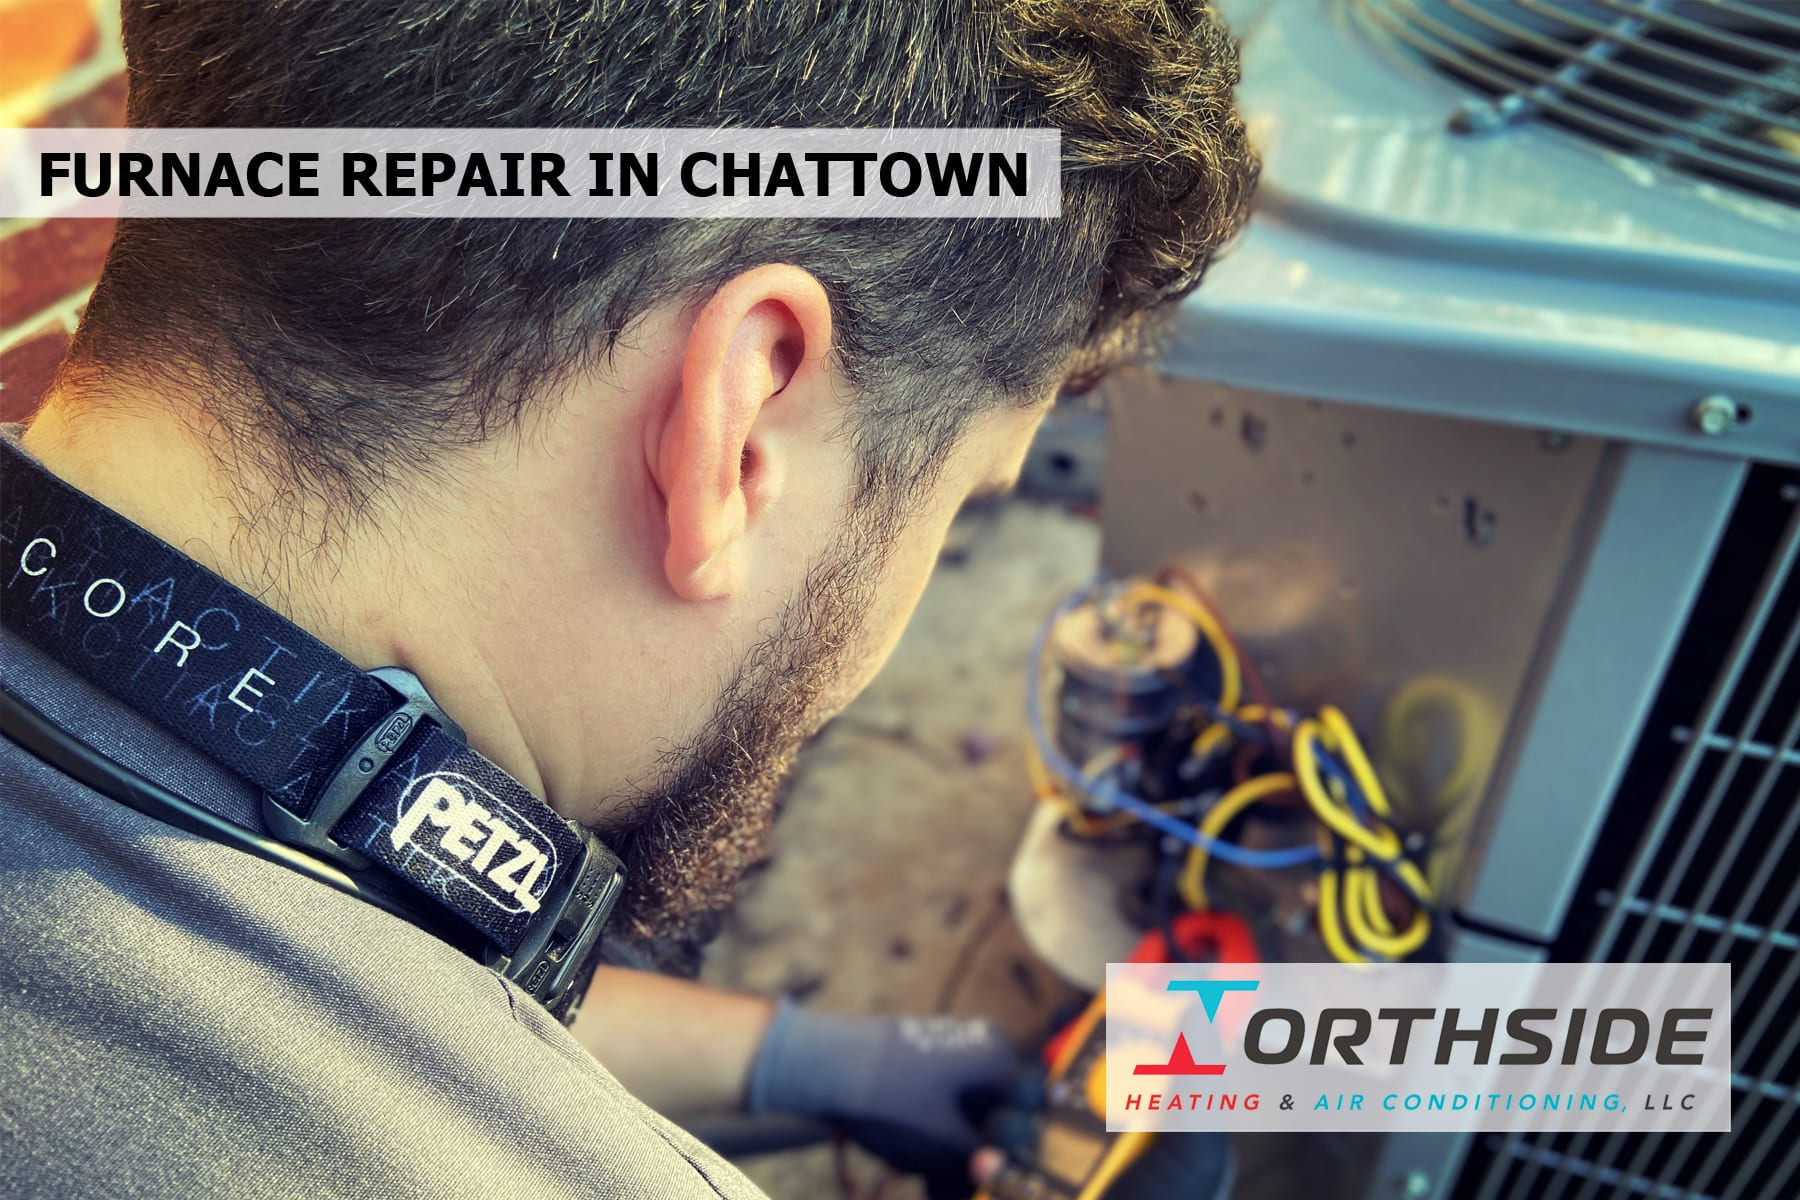 FURNACE REPAIR IN CHATTOWN